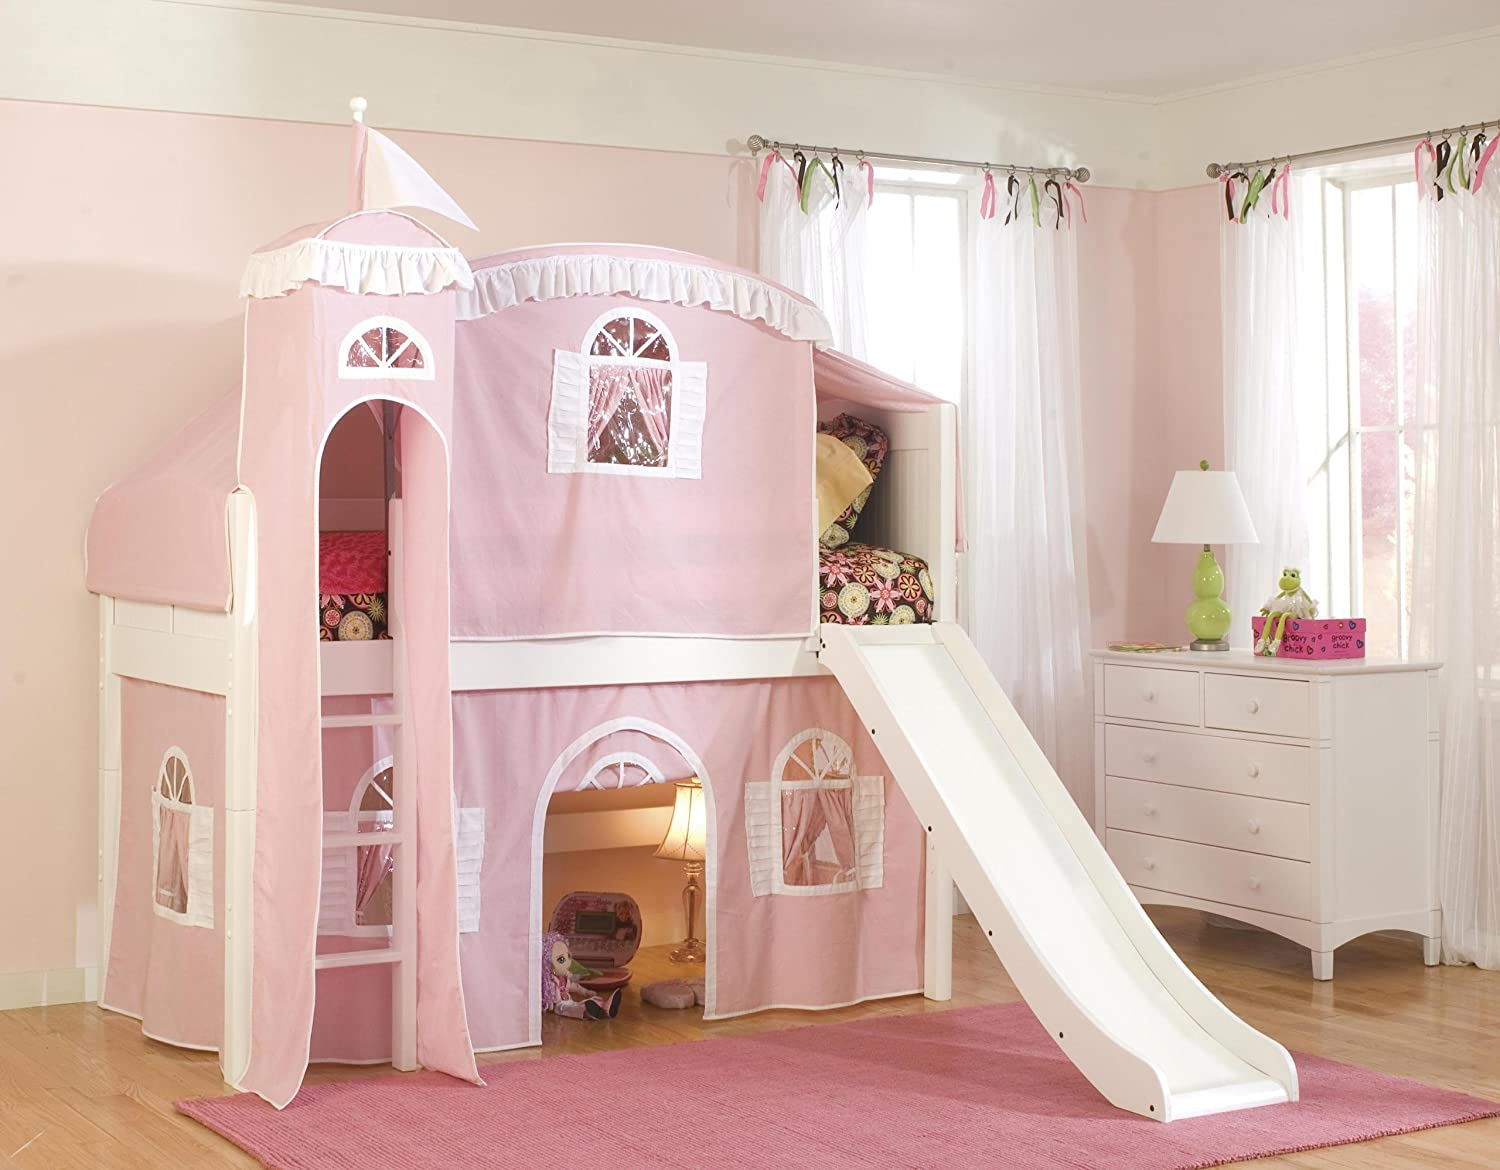 Superior Amazon.com: Bolton Furniture 9811500LT6PW Cottage Low Loft Castle Bed,  White With Pink/White Top Tent, Bottom Playhouse Curtain, Tower And Slide:  Kitchen U0026 ...